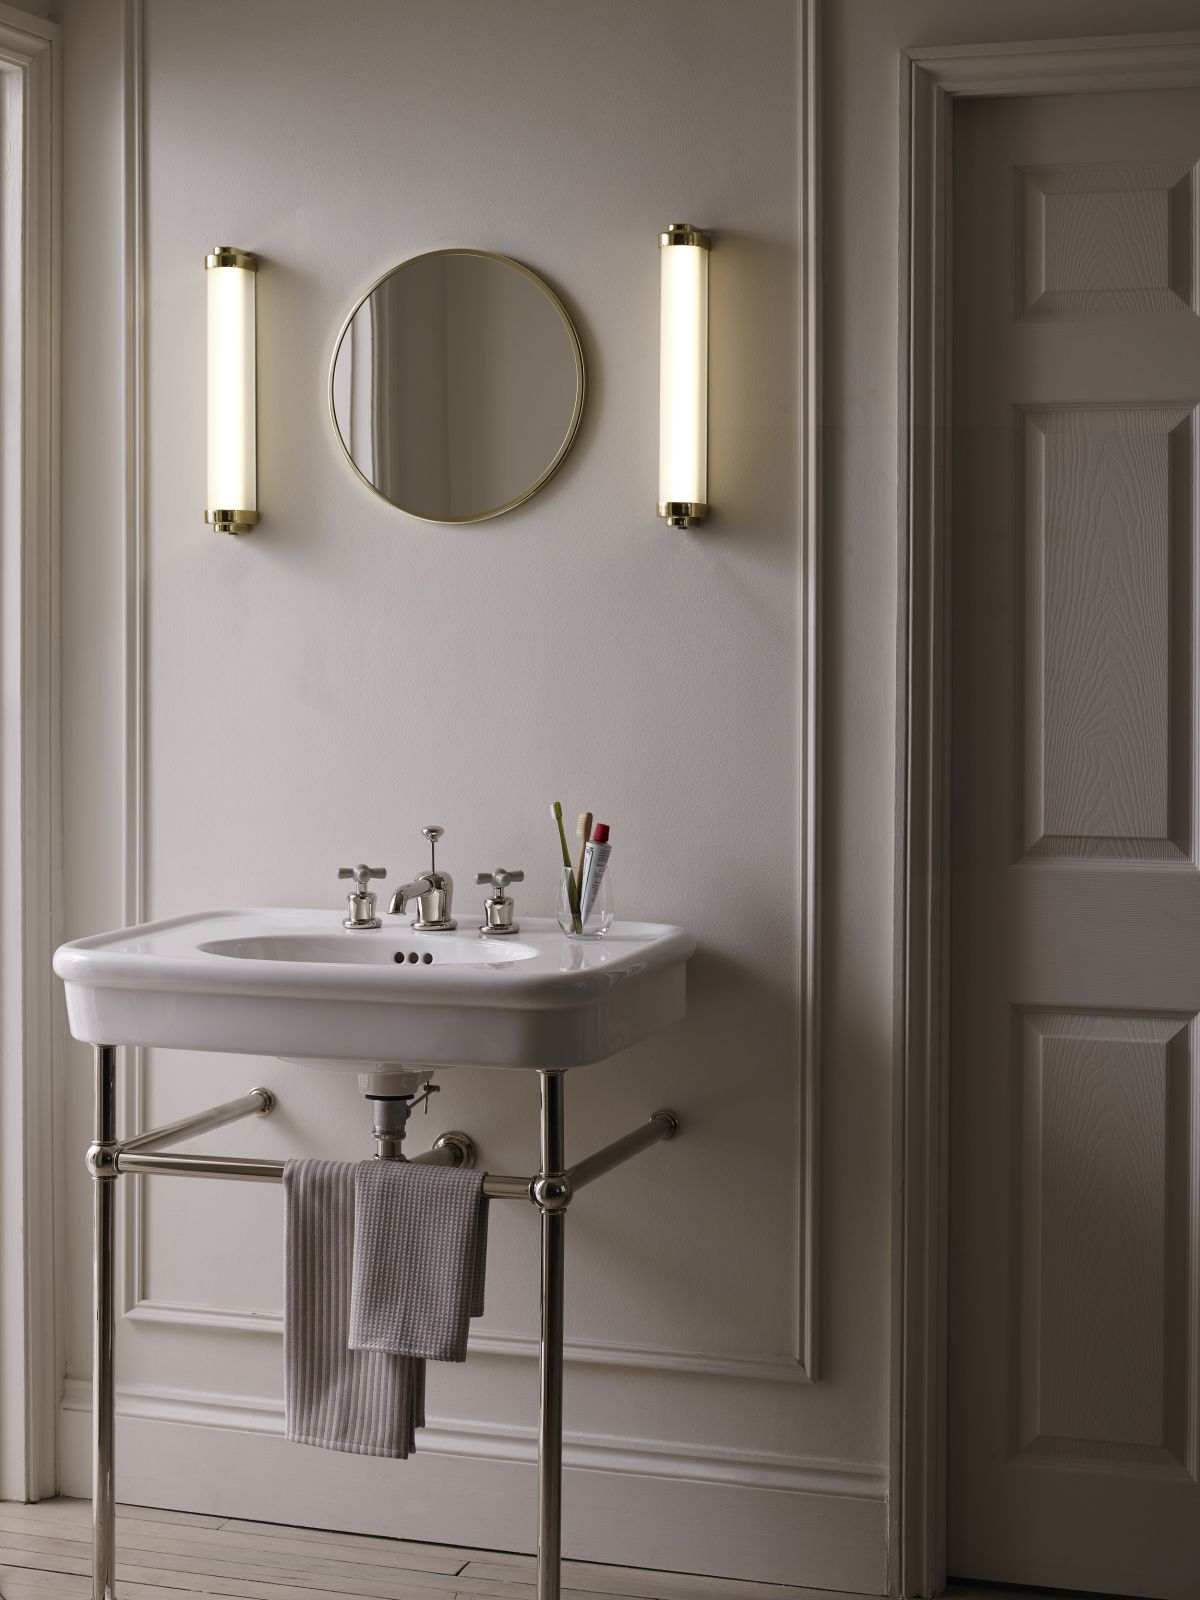 20 Bathroom Lighting Ideas Beautiful Ways To Brighten Up Your Space Real Homes